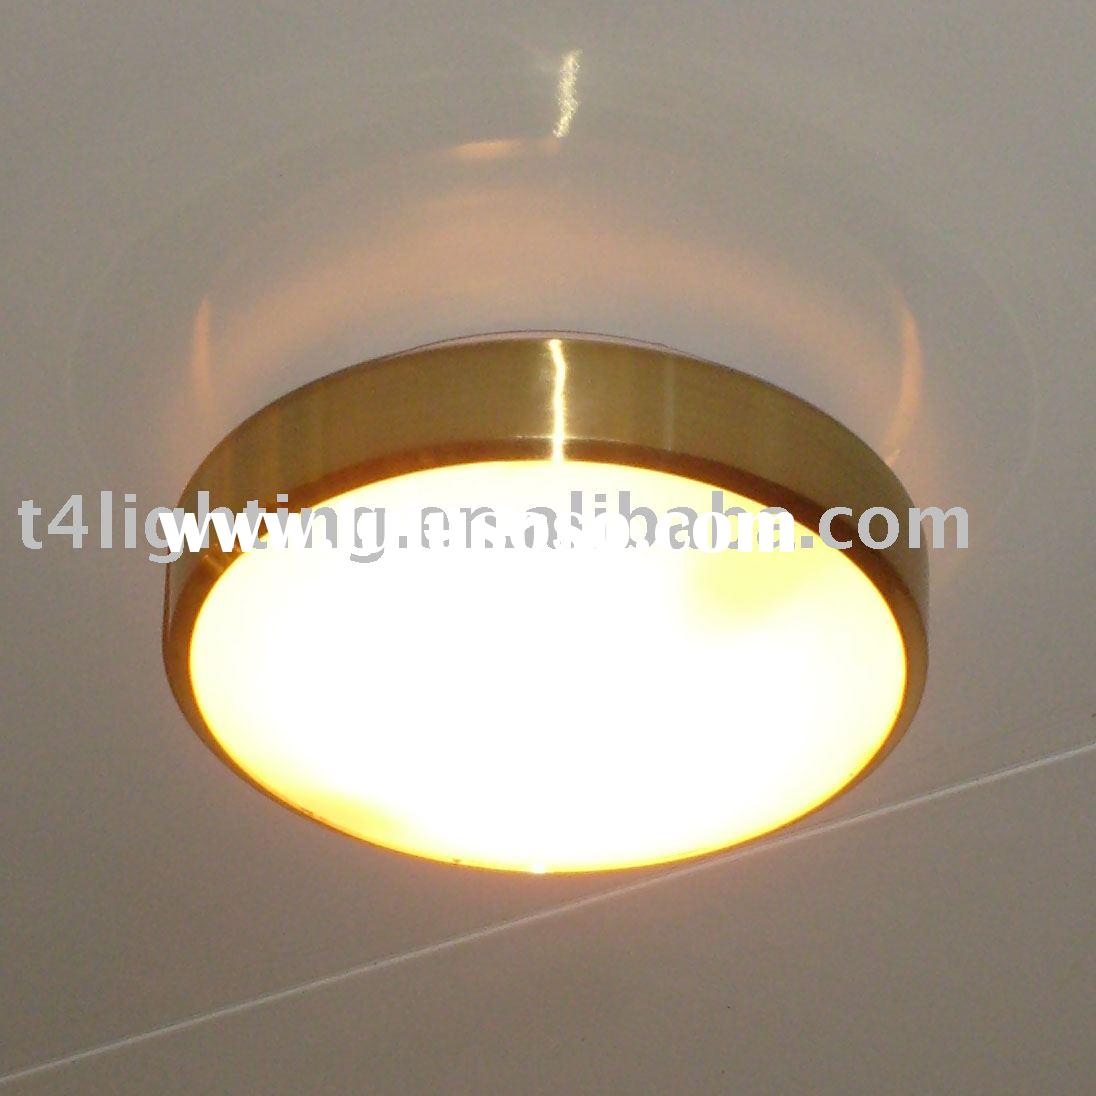 Suspension light,Ceiling Lighting ,Wall lamp ,Bathroom Wall lamp; Mirror Lights ,Under Cabinet Light